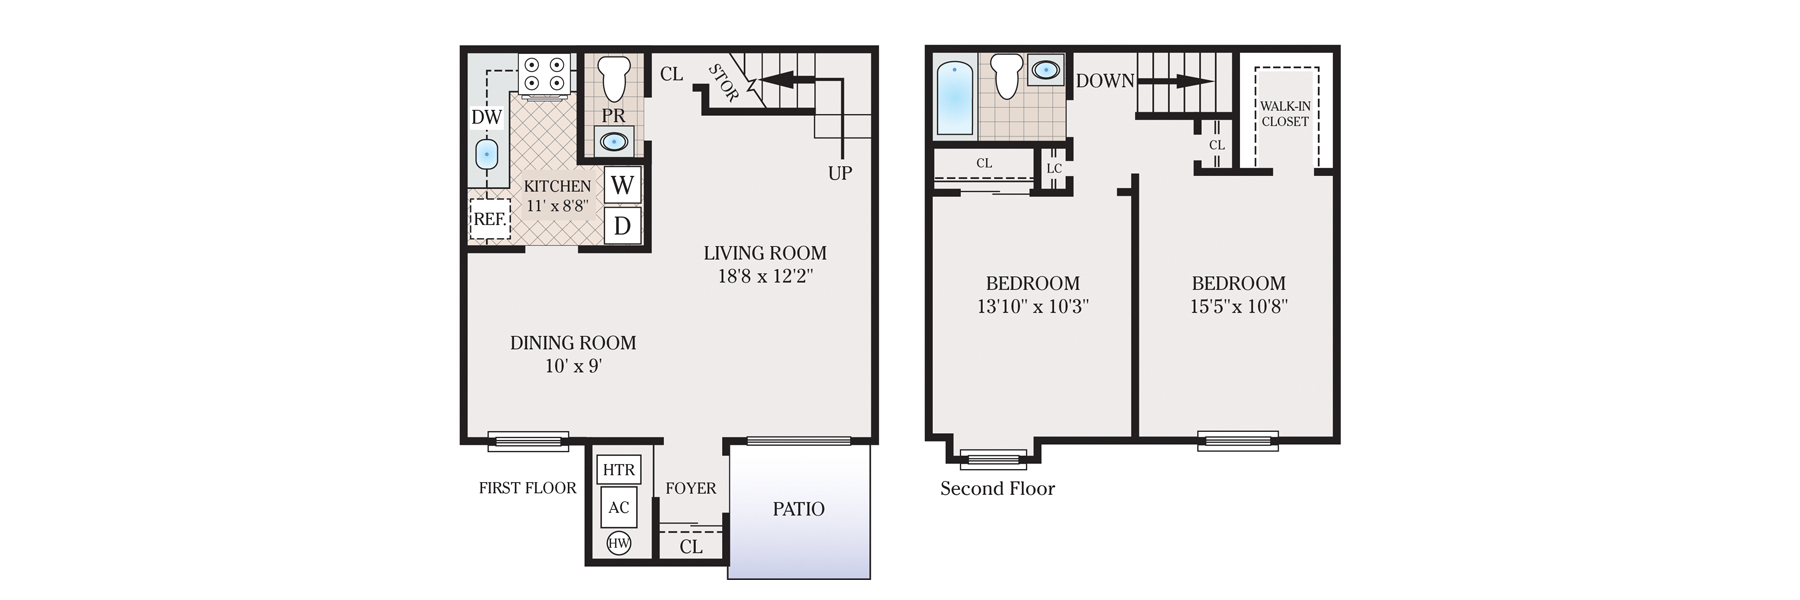 1 bedroom townhouse home design plan for 5 bedroom townhouse floor plans